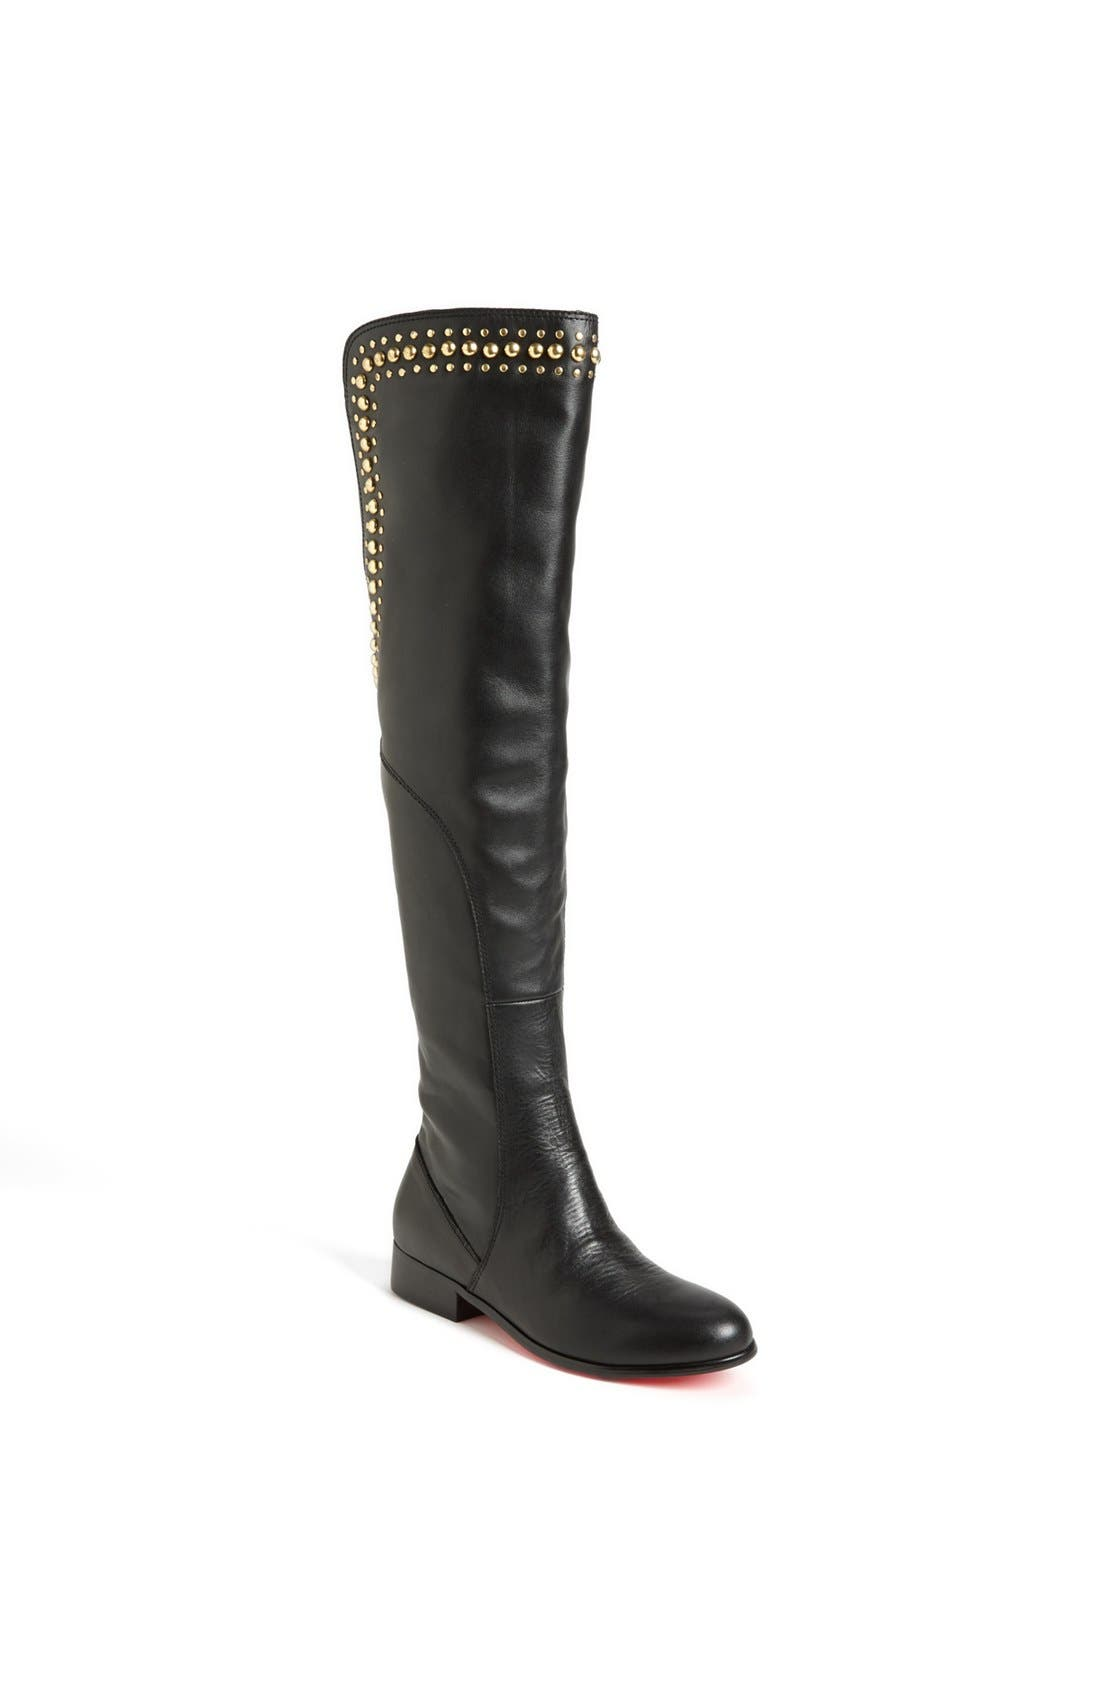 Alternate Image 1 Selected - Betsey Johnson 'Shanah' Over the Knee Boot